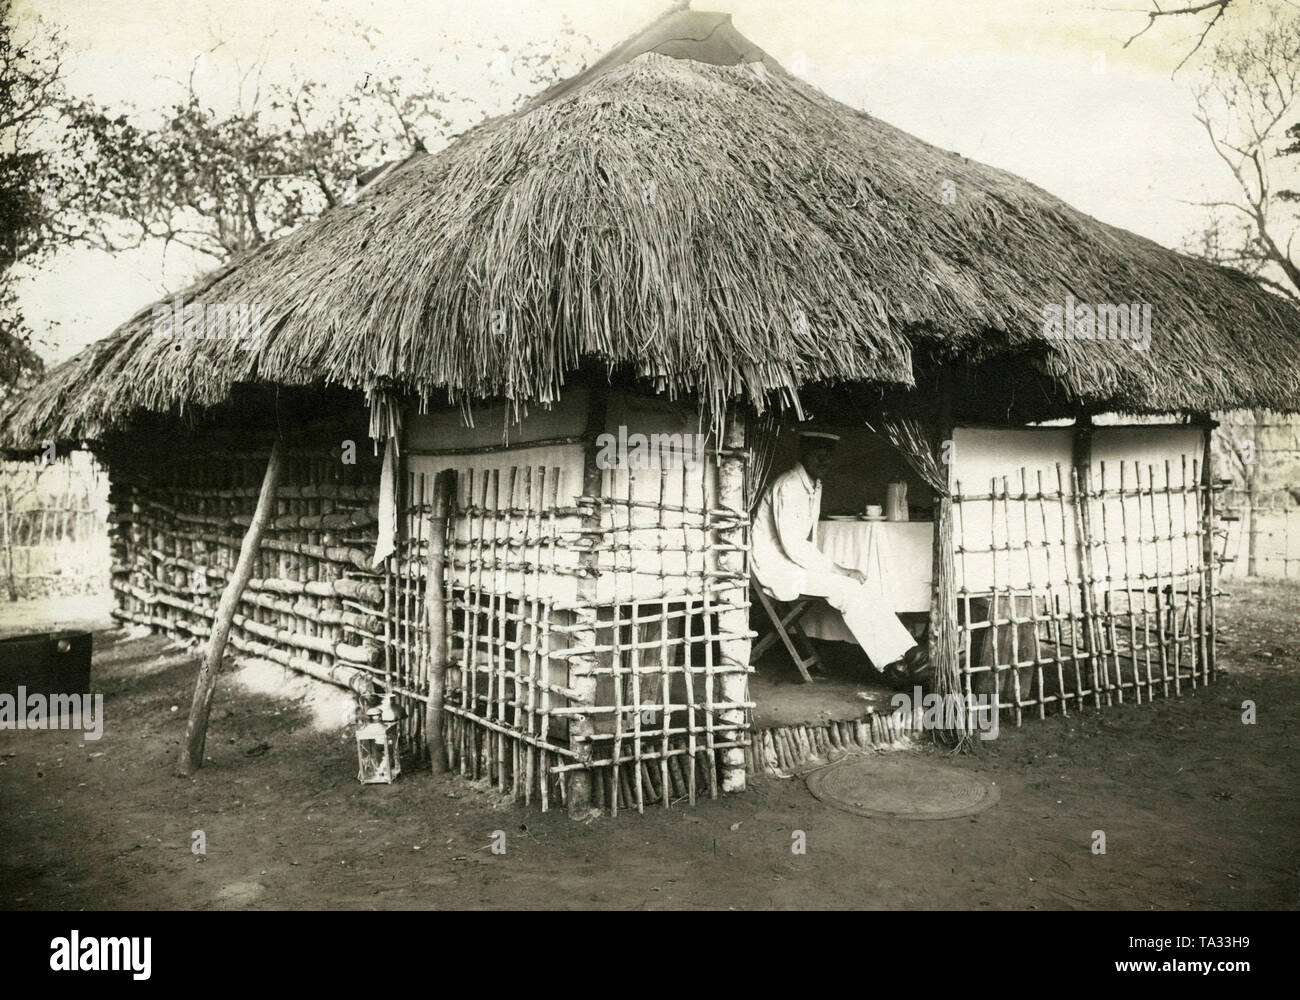 A white man, possibly a colonial officer, sitting at the coffee table in a house built in local style in the German colony of German East Africa. - Stock Image